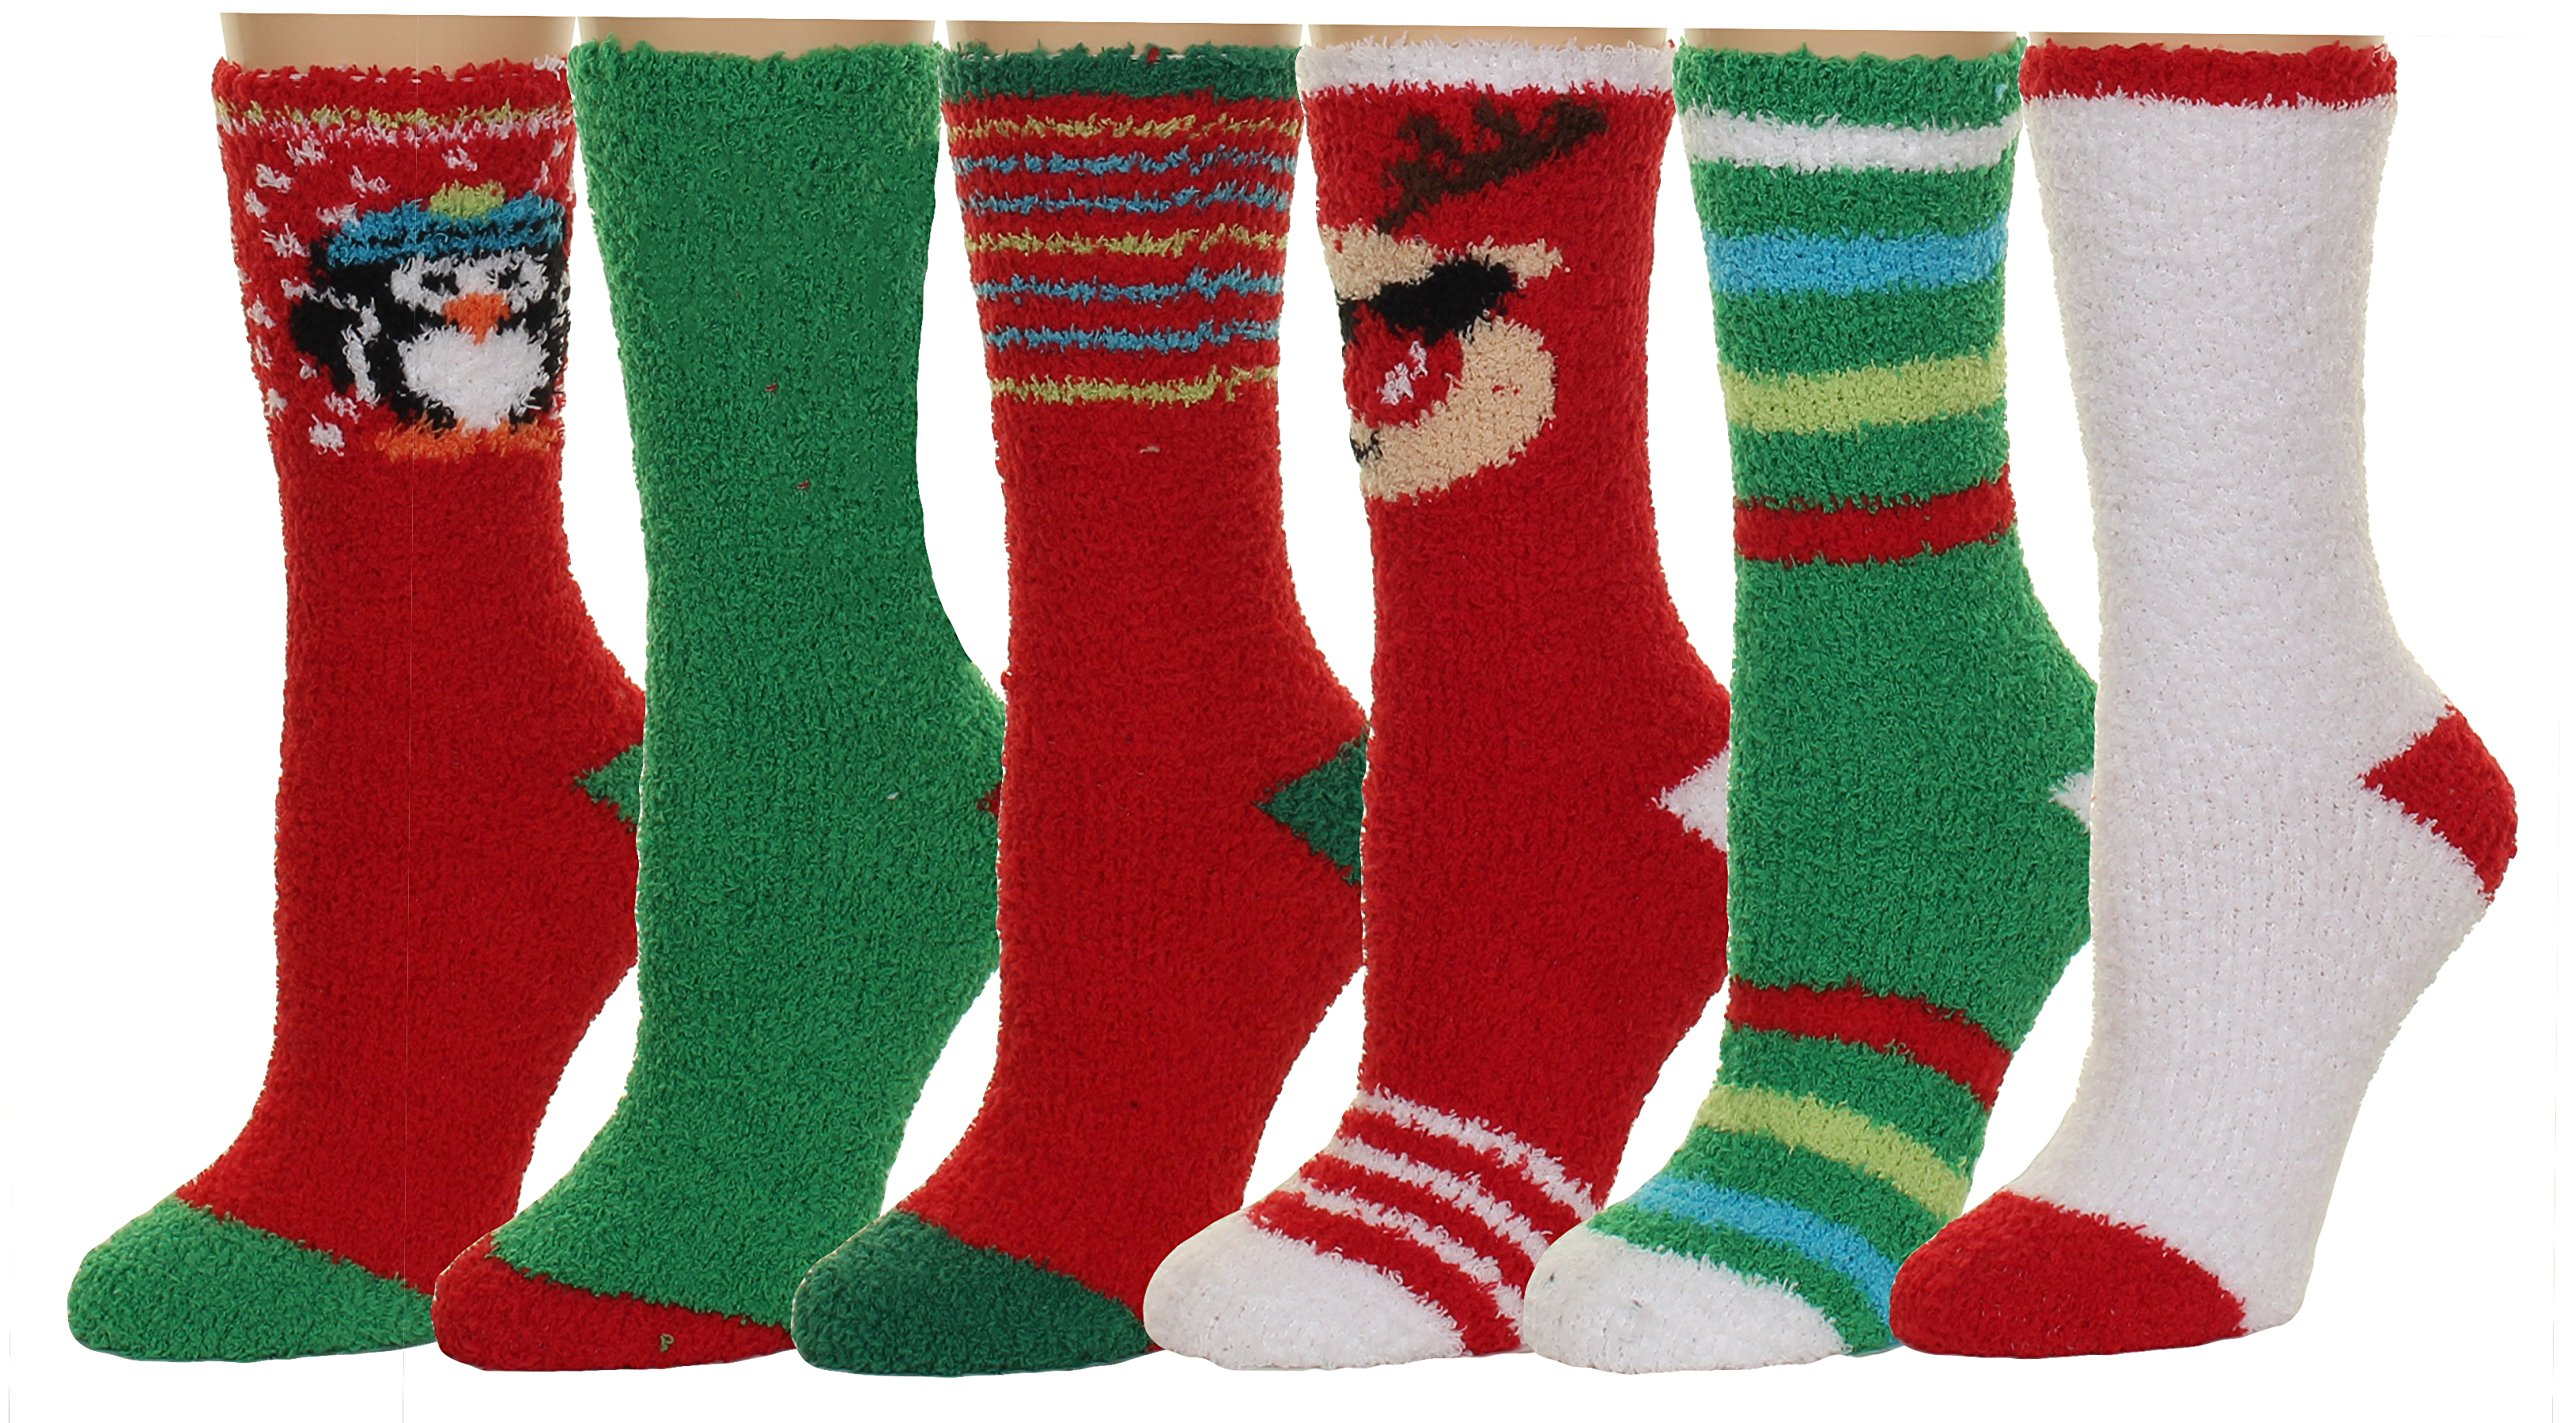 Fuzzy and Soft Holiday Christmas Slipper Socks, 6 Pack, Size 9-11 (Style 5)